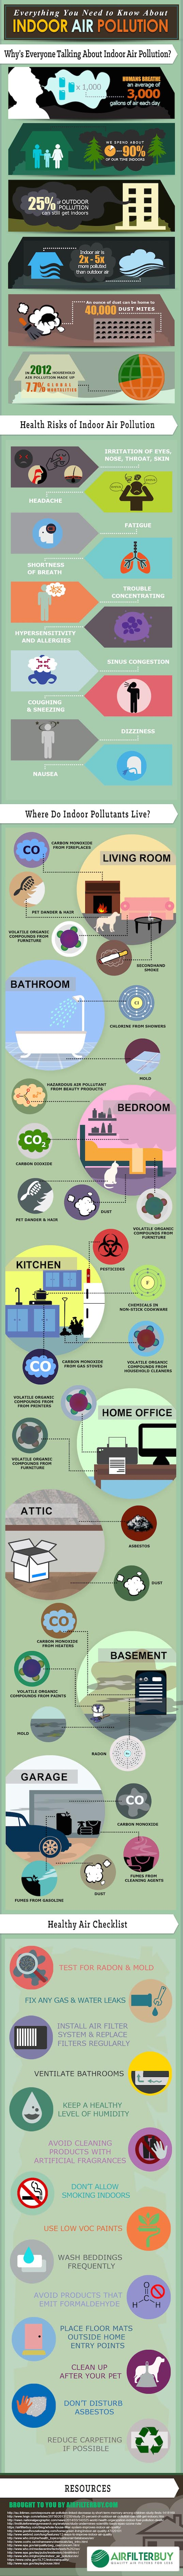 indoor air pollution, air pollution, Air Filter Buy, infographic, reader submitted content, pollutants,